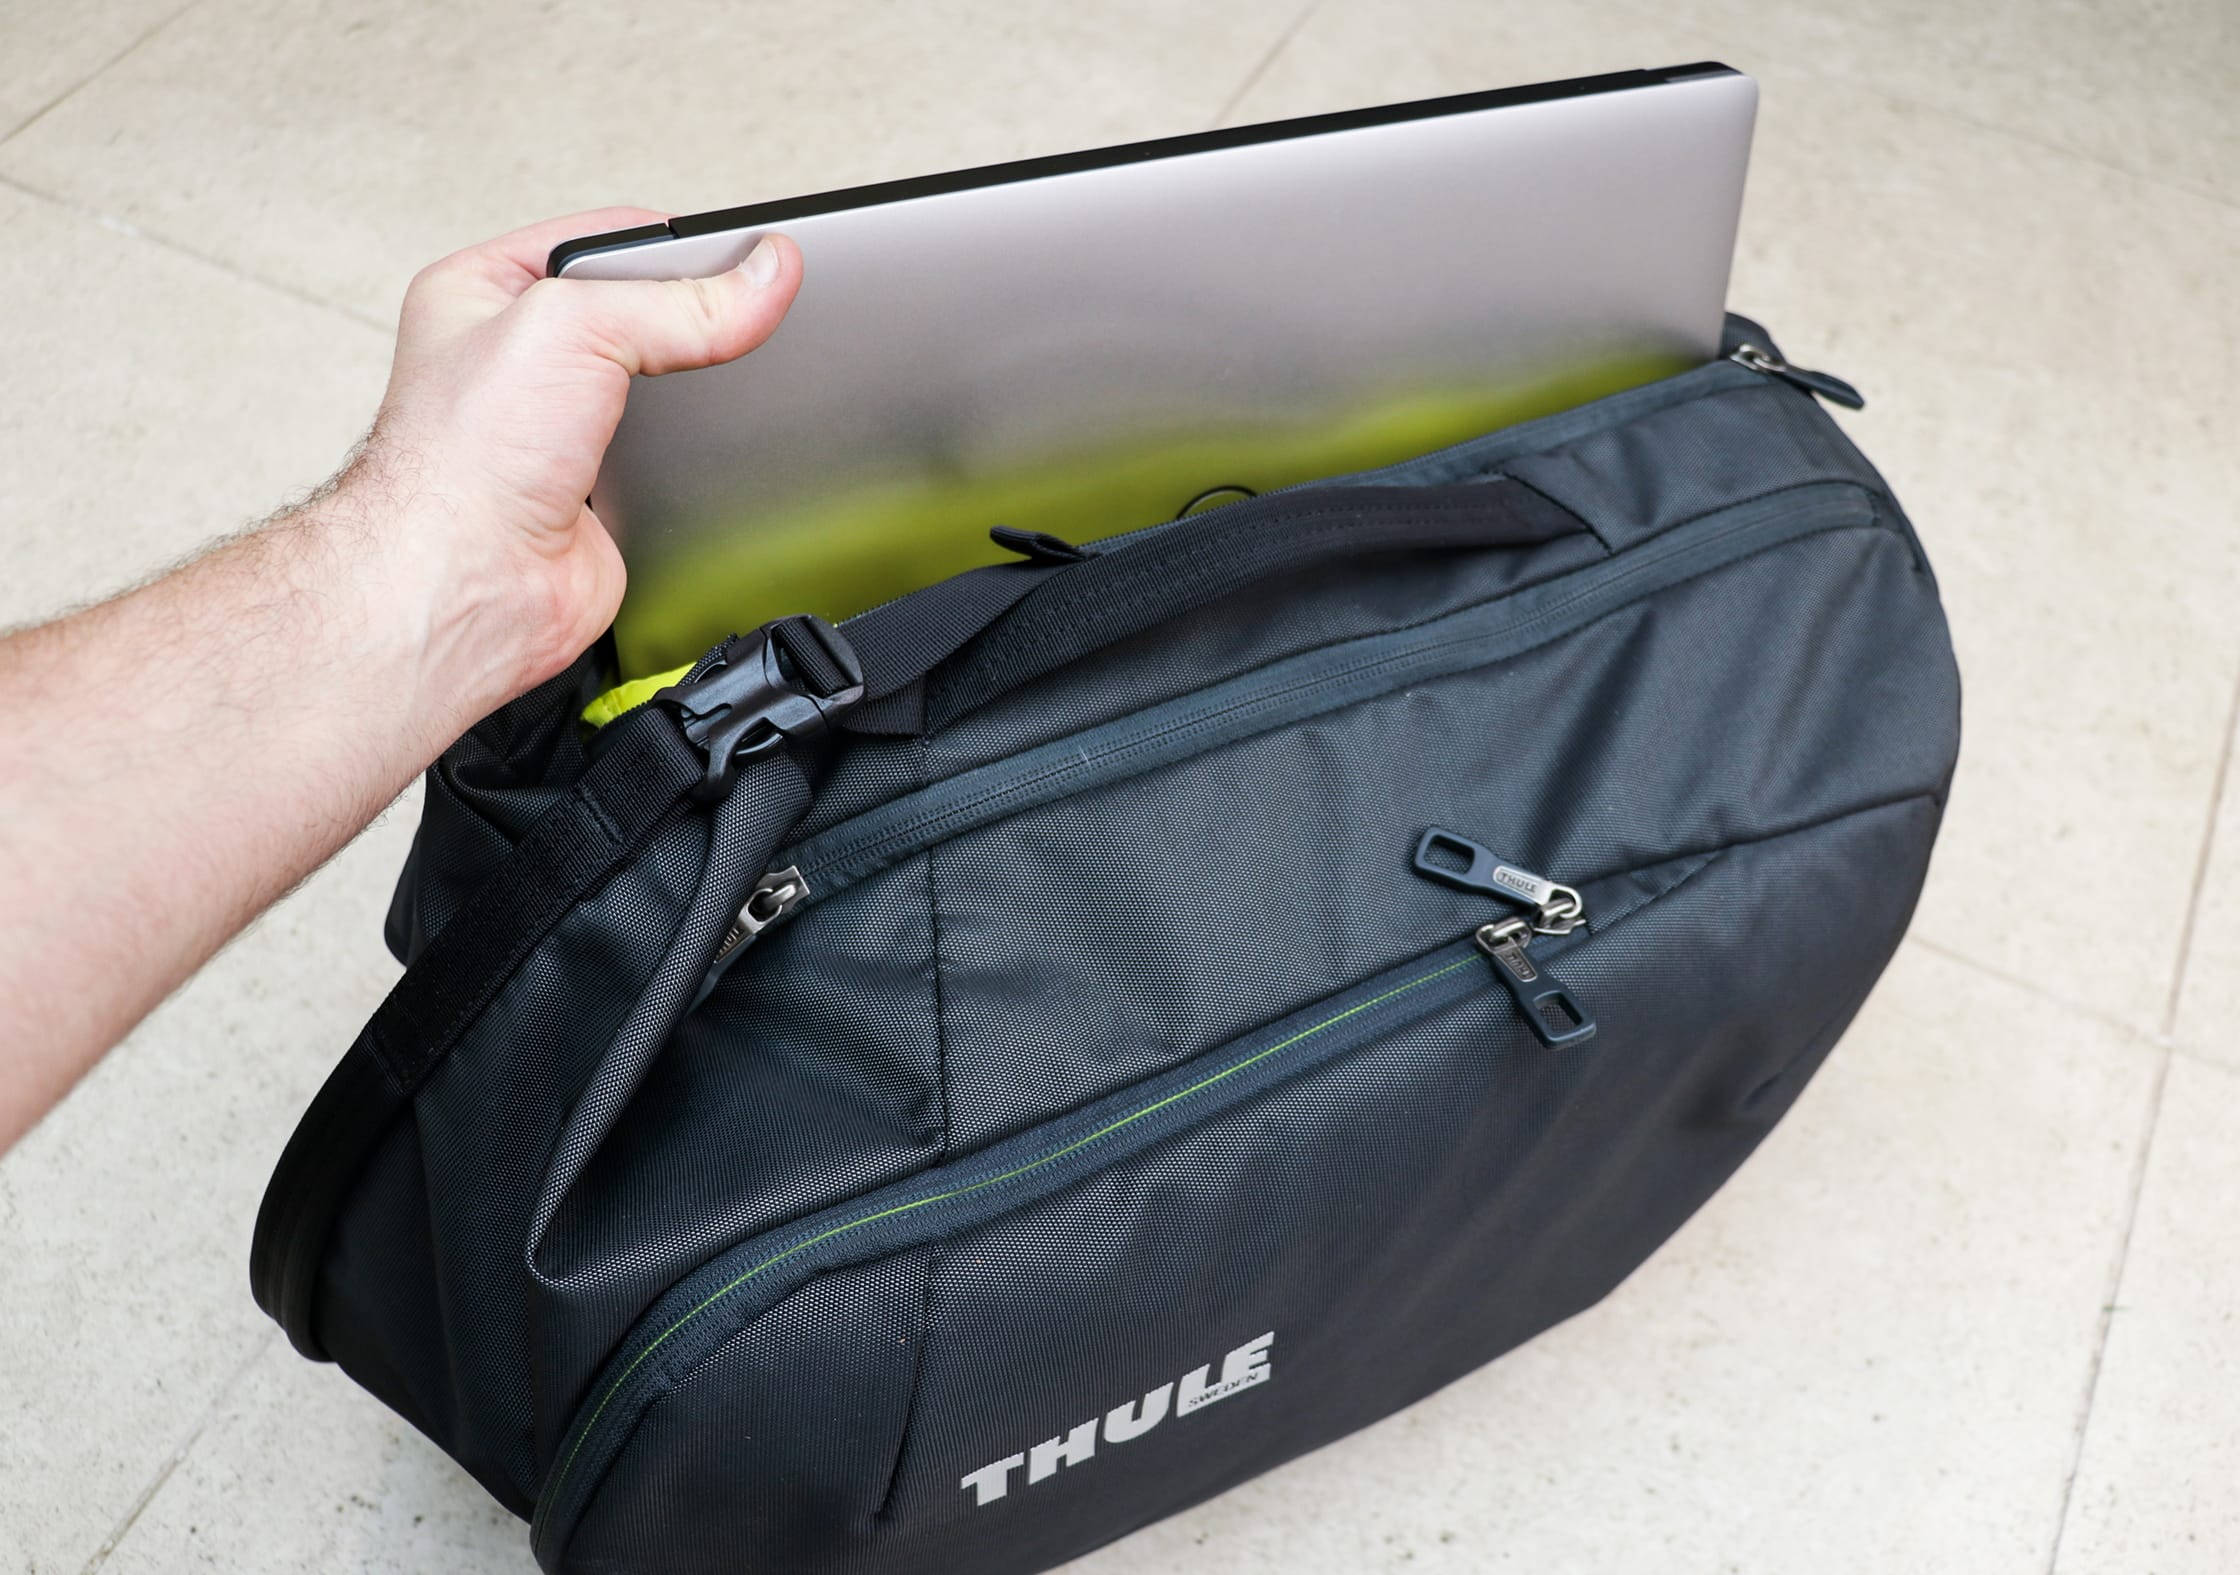 Thule Subterra 34L Laptop Compartment